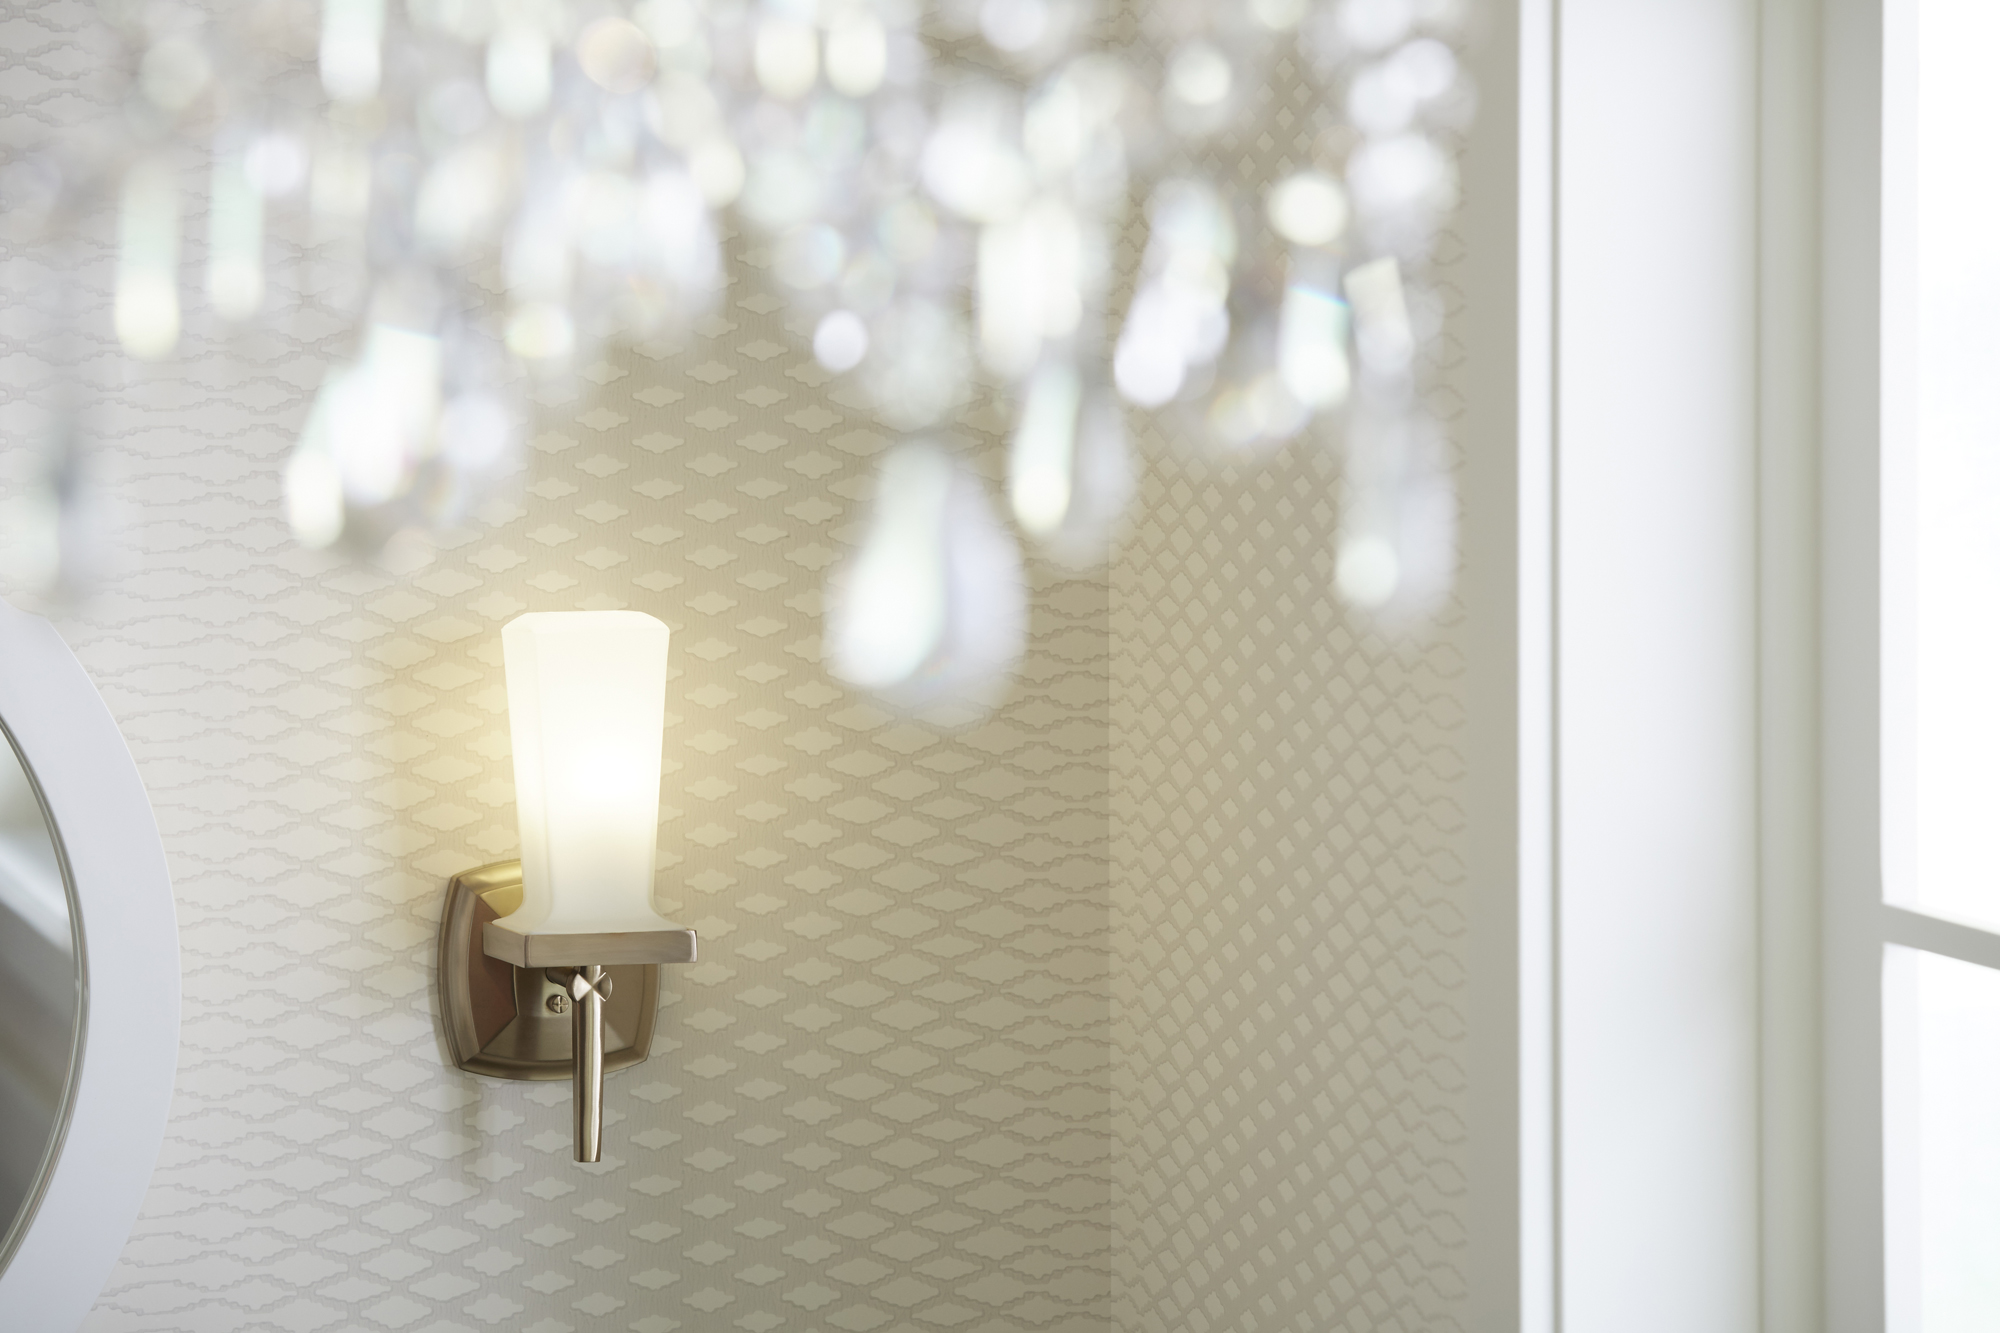 Margaux® sconce    Designed to match the faucet and accessories, this sconce balances formal elegance with a sleek silhouette.